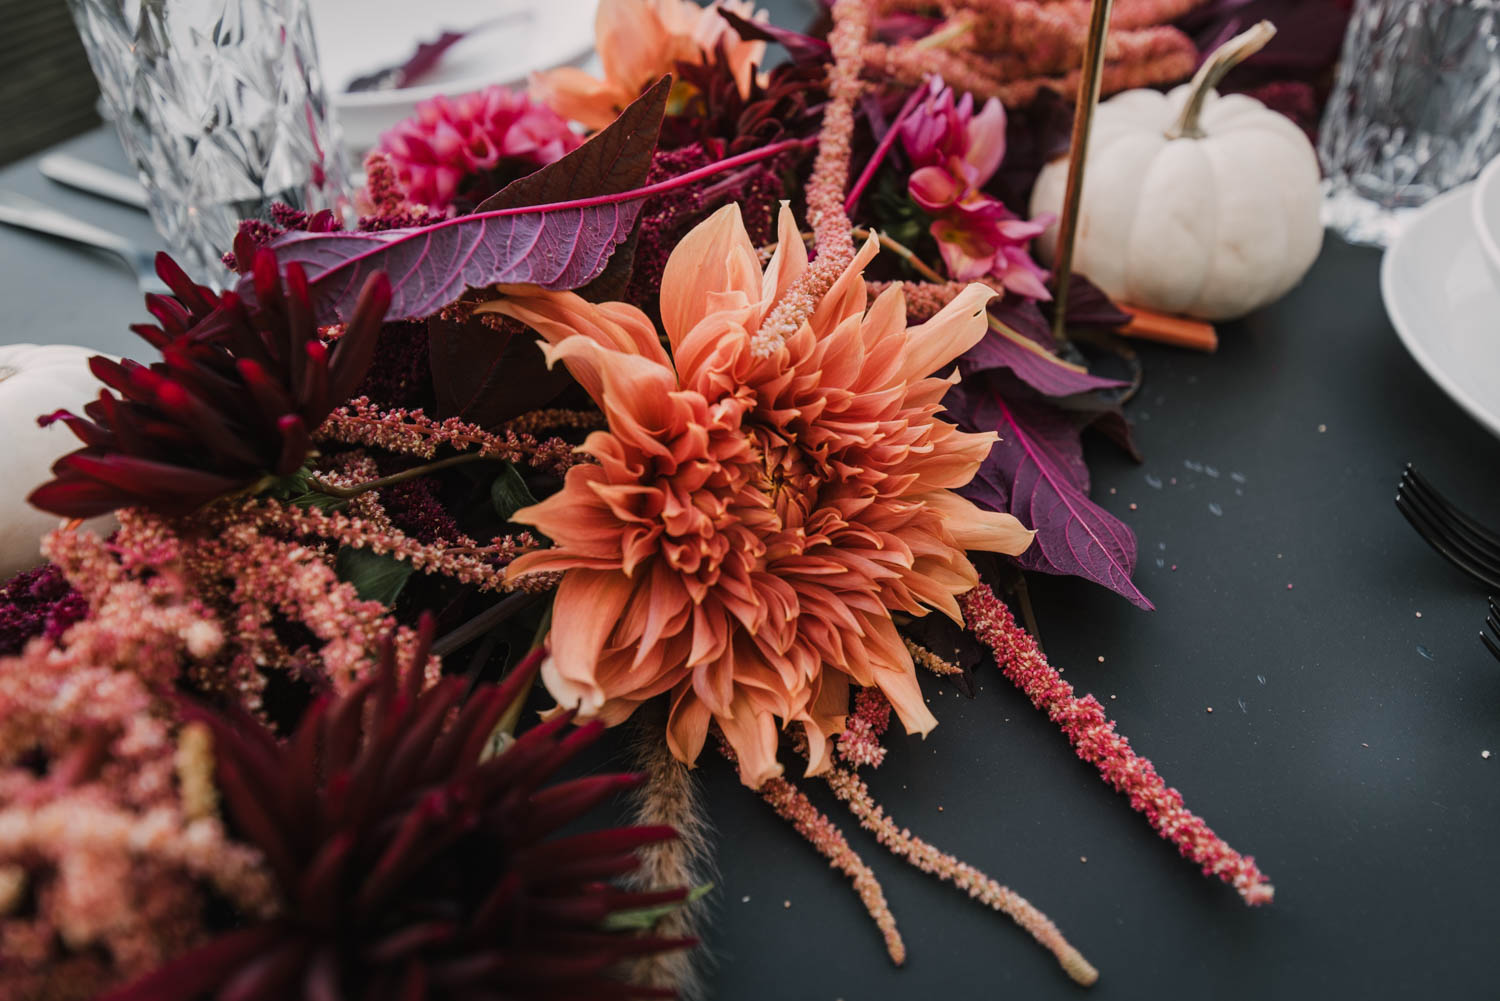 Giant Dahlias in this unique fall table setting